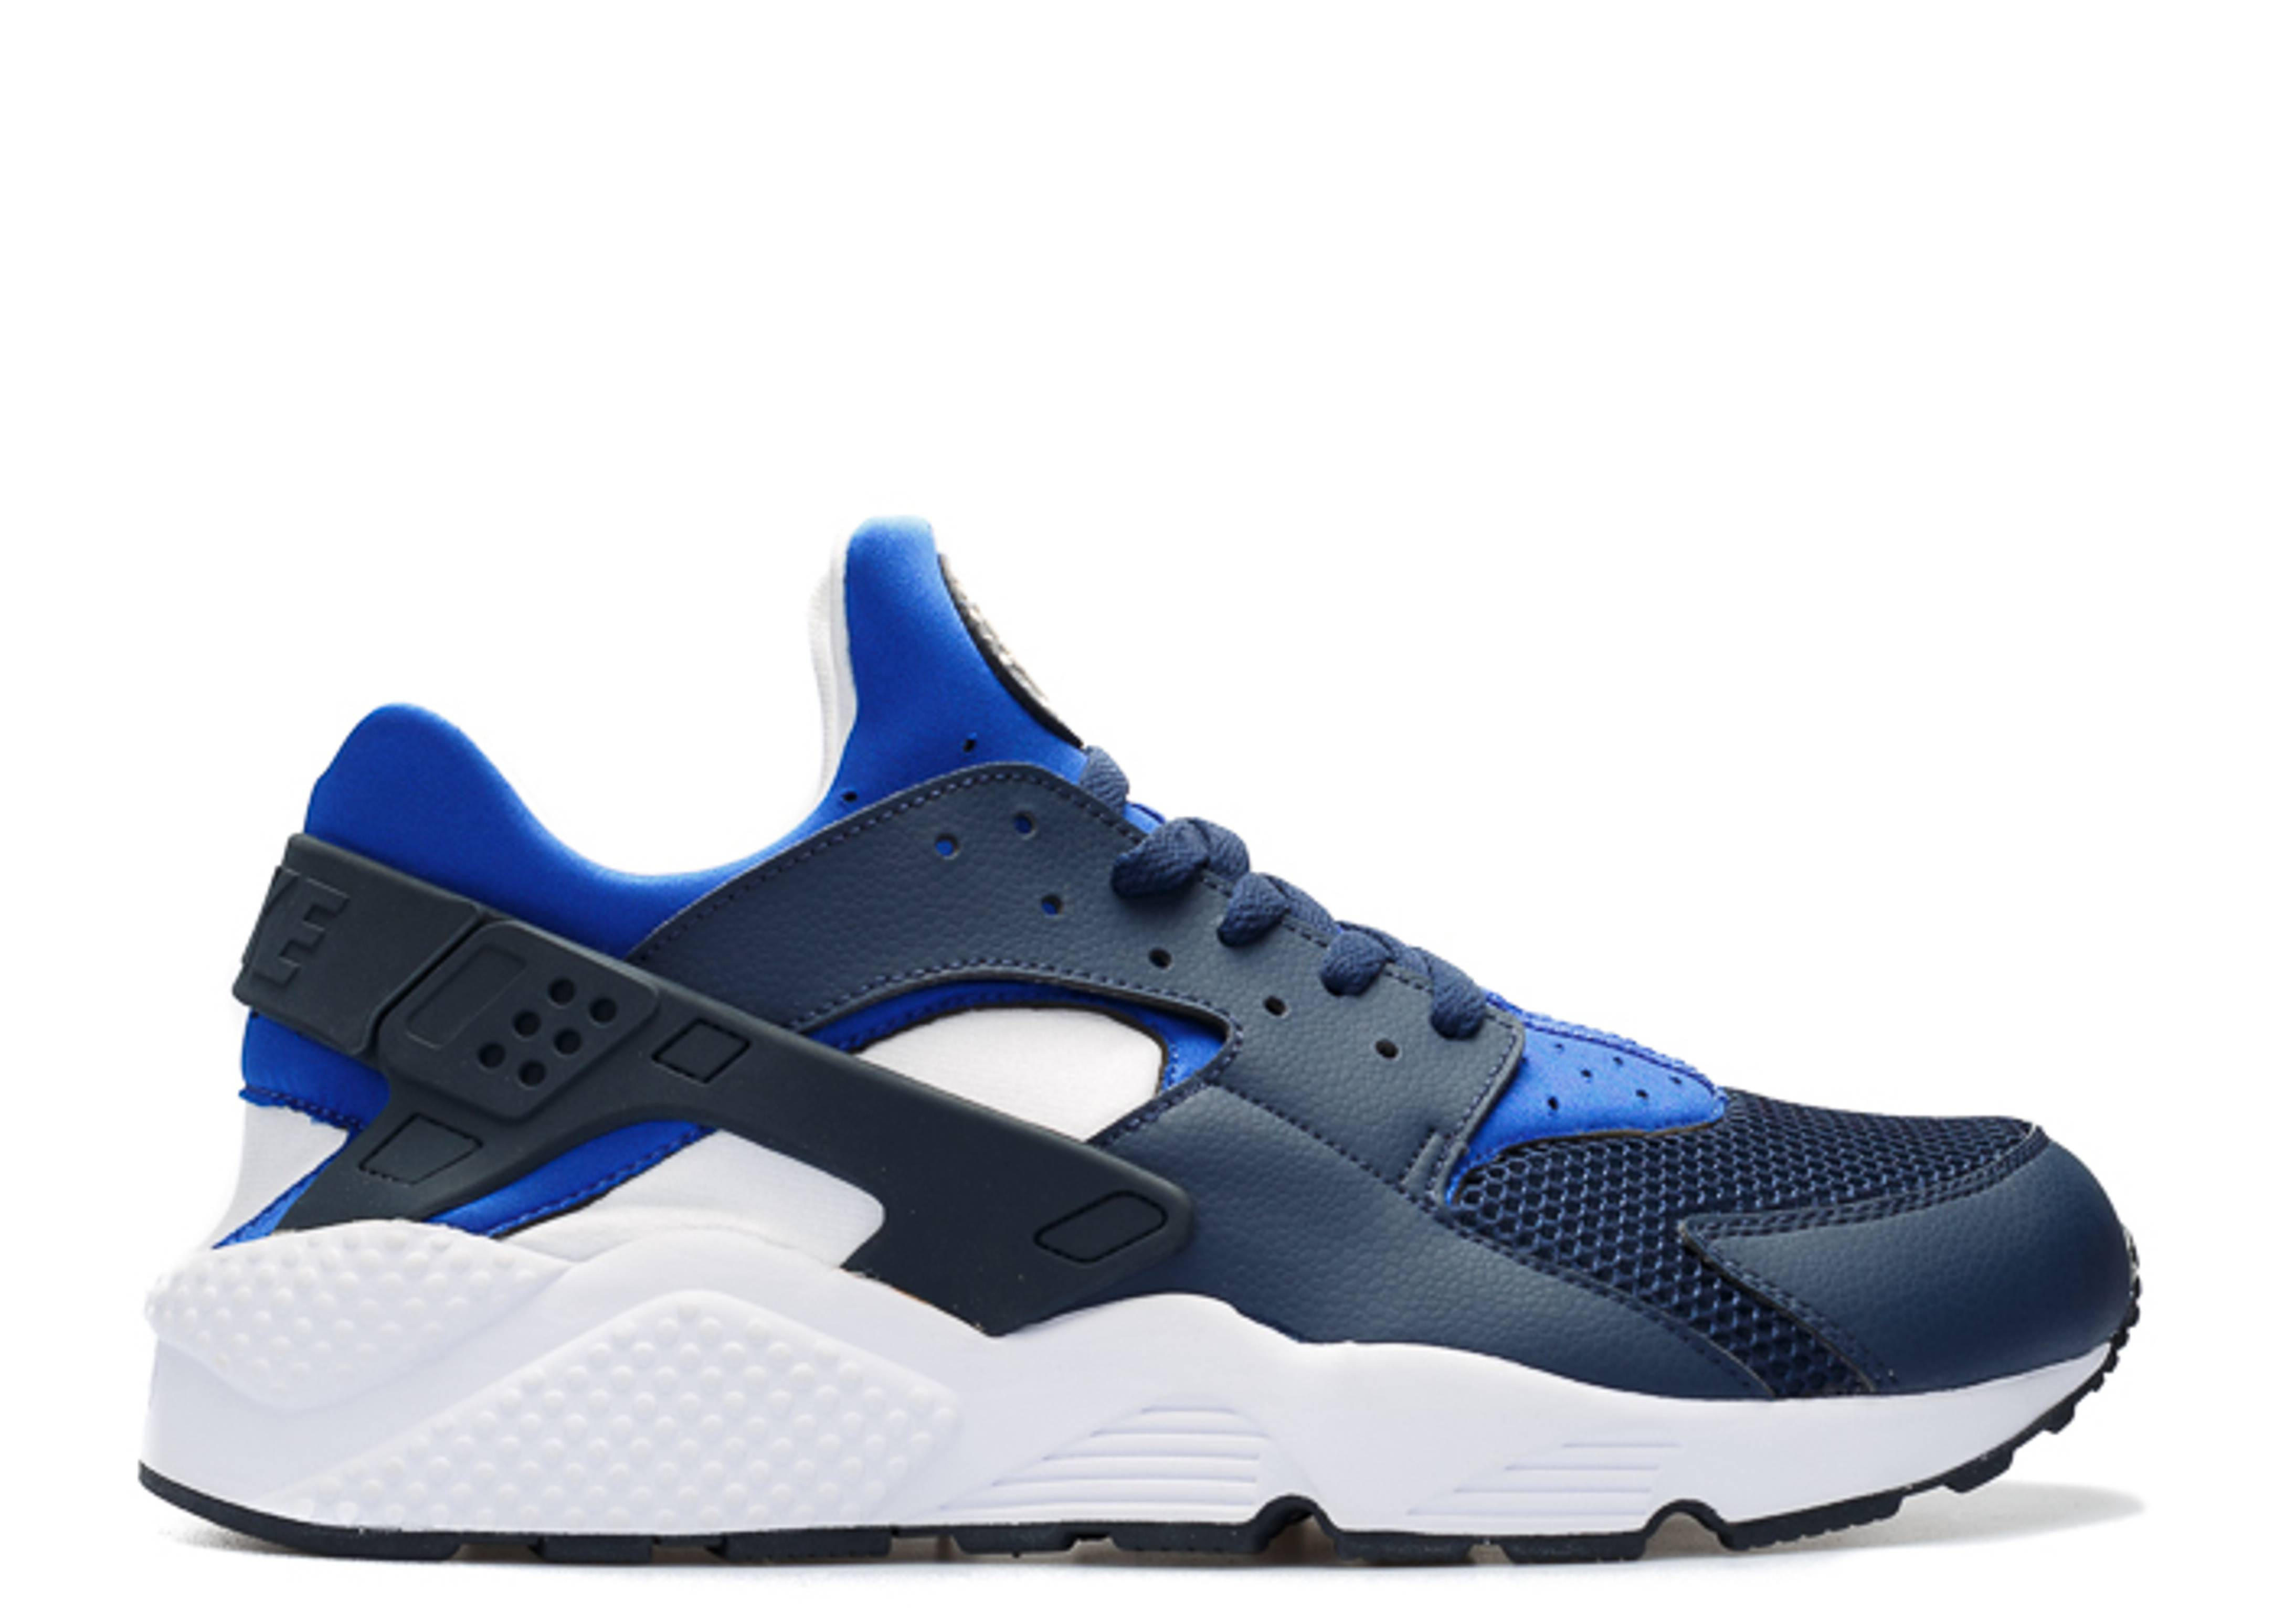 f671282b1cda Air Huarache - Nike - 318429 442 - midnight navy lyon blue-white ...